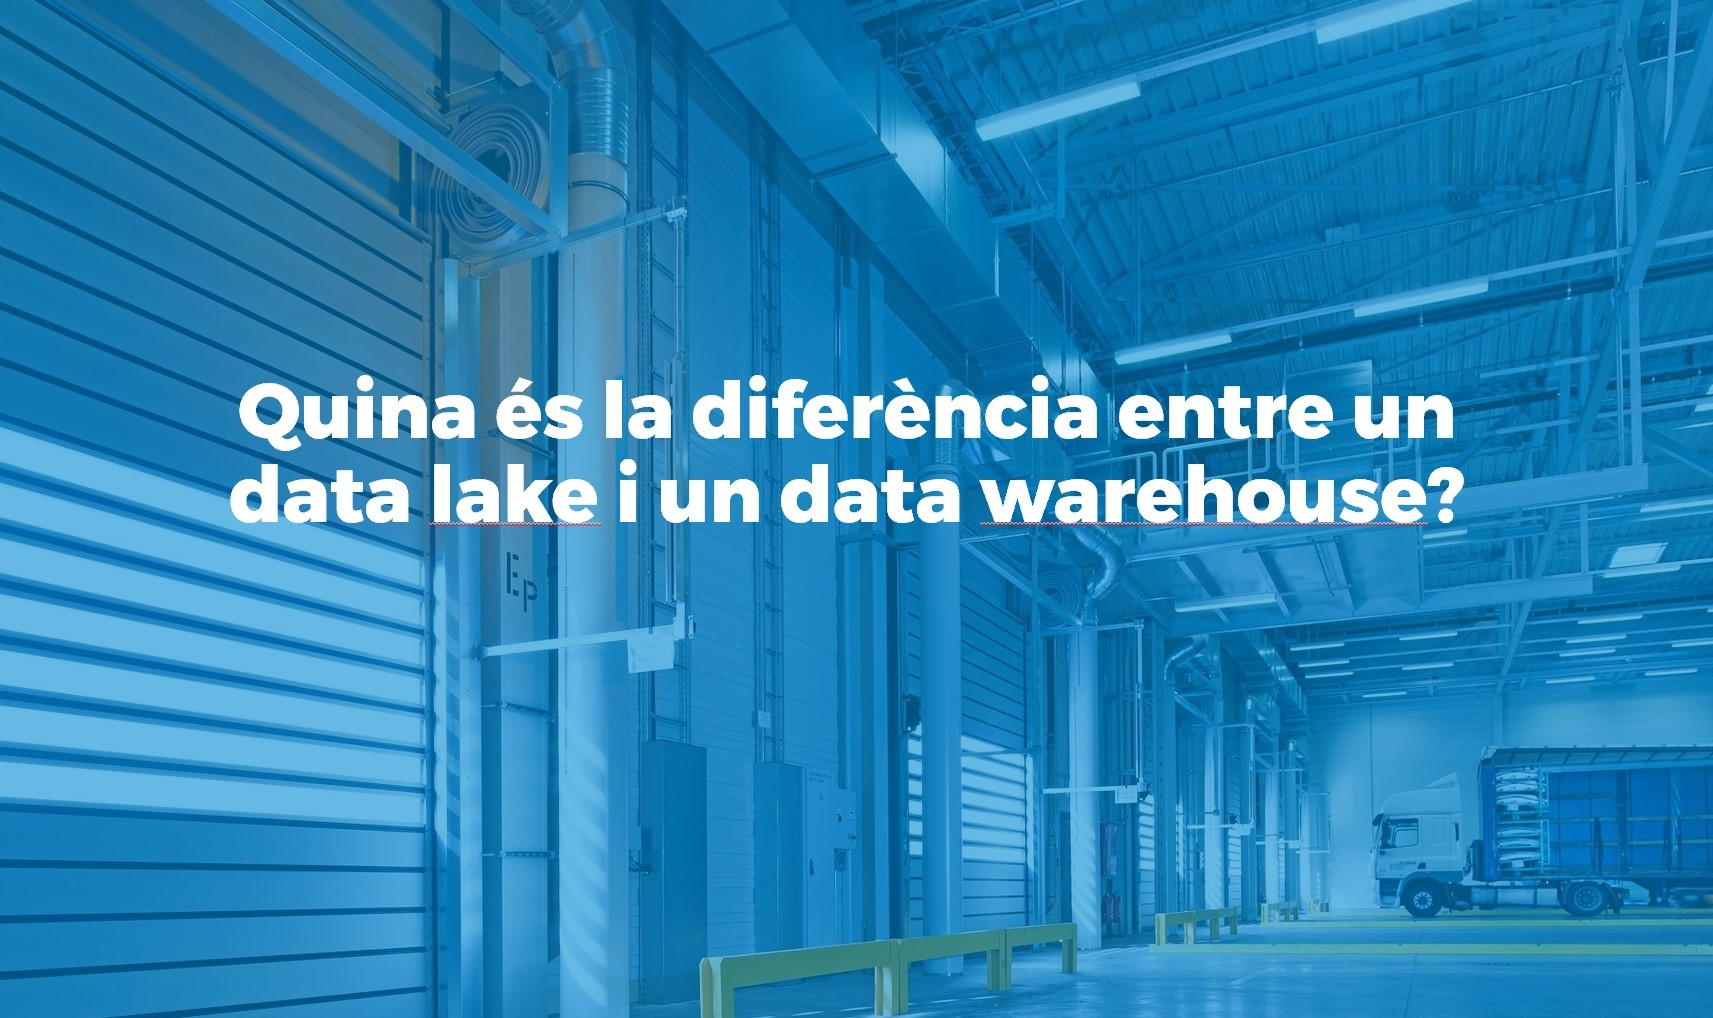 Quina és la diferencia entre un data warehouse i un data lake